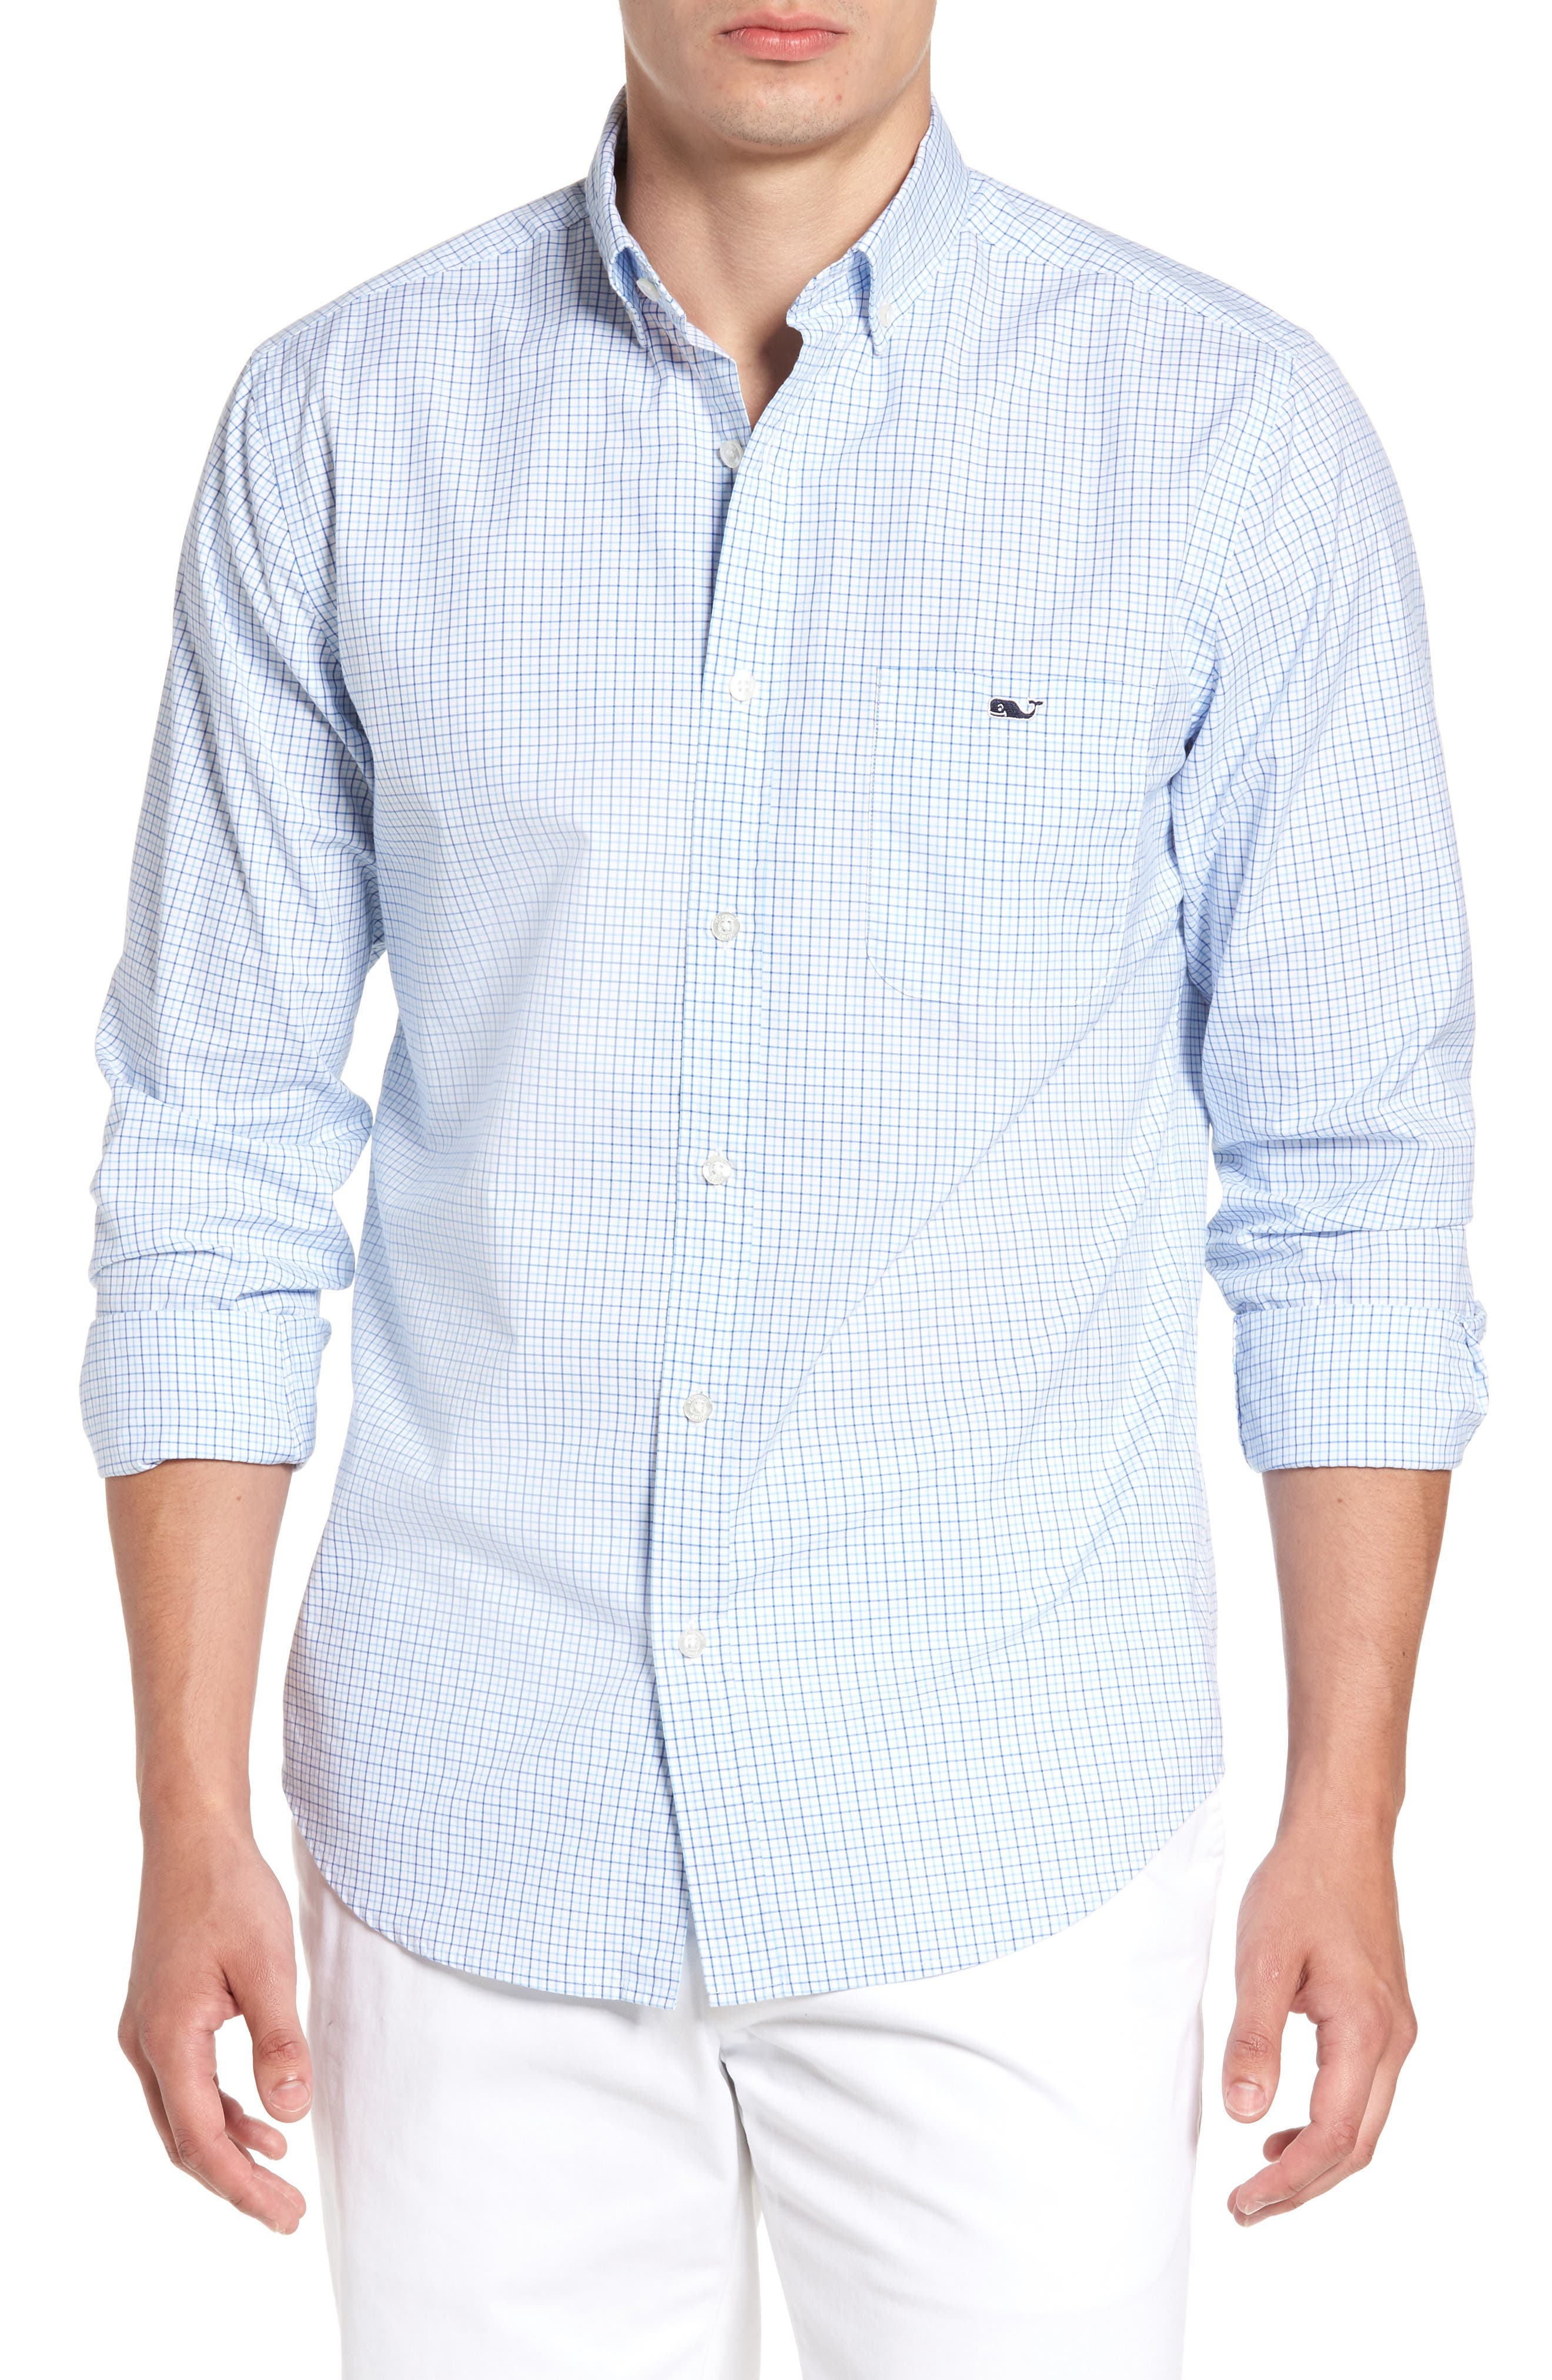 Twin Pond Classic Fit Tattersall Check Sport Shirt,                             Main thumbnail 1, color,                             484